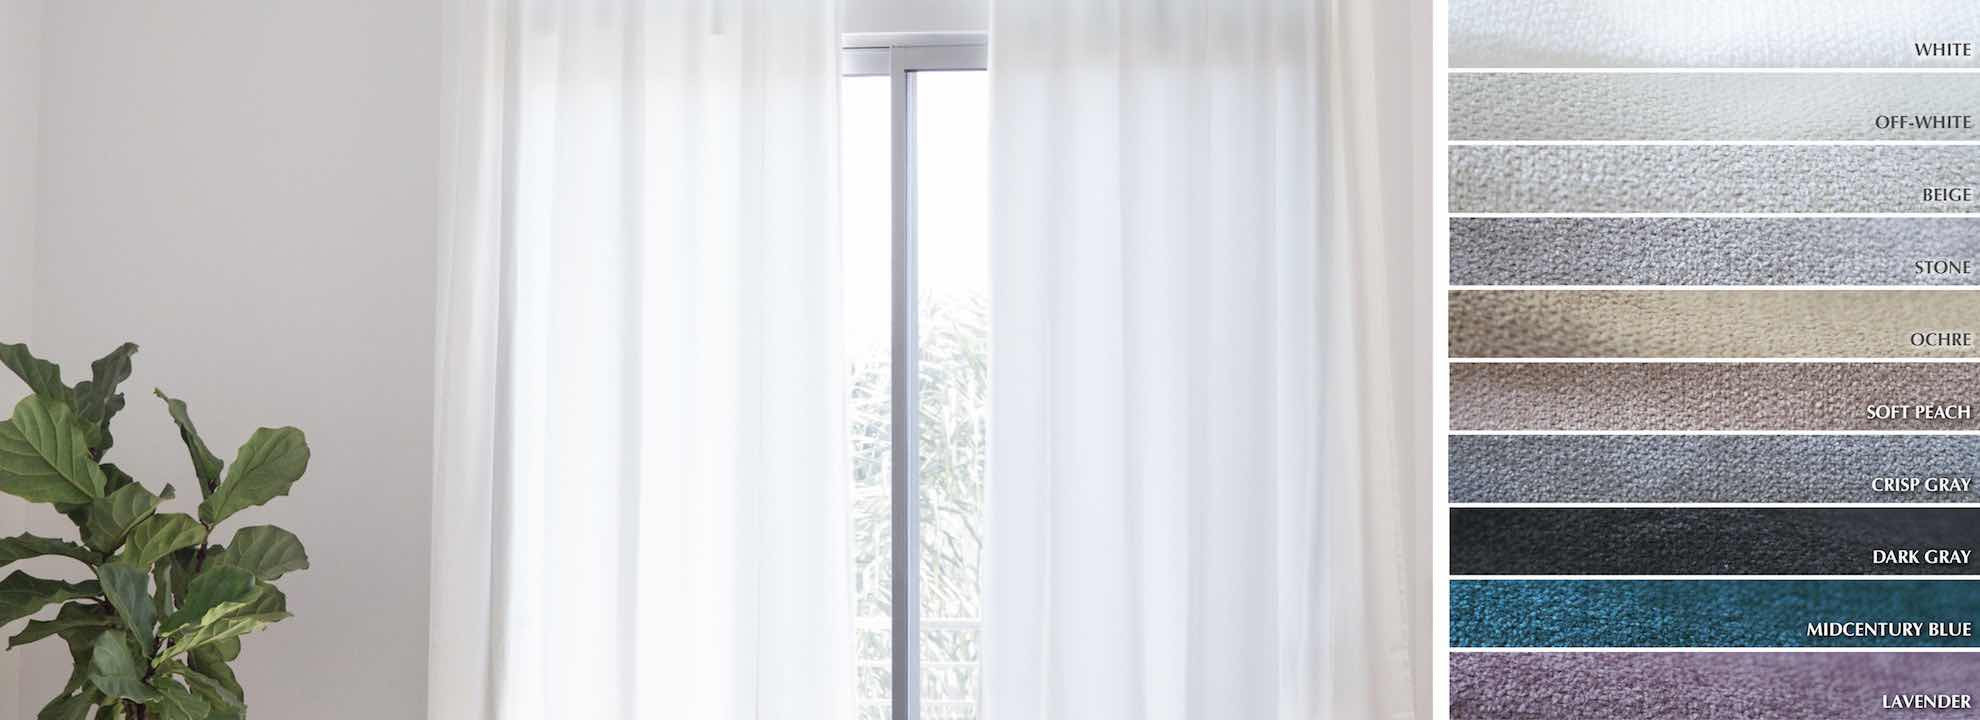 Soothe - Collection Curtains Chenille texture matte velvet Fabric